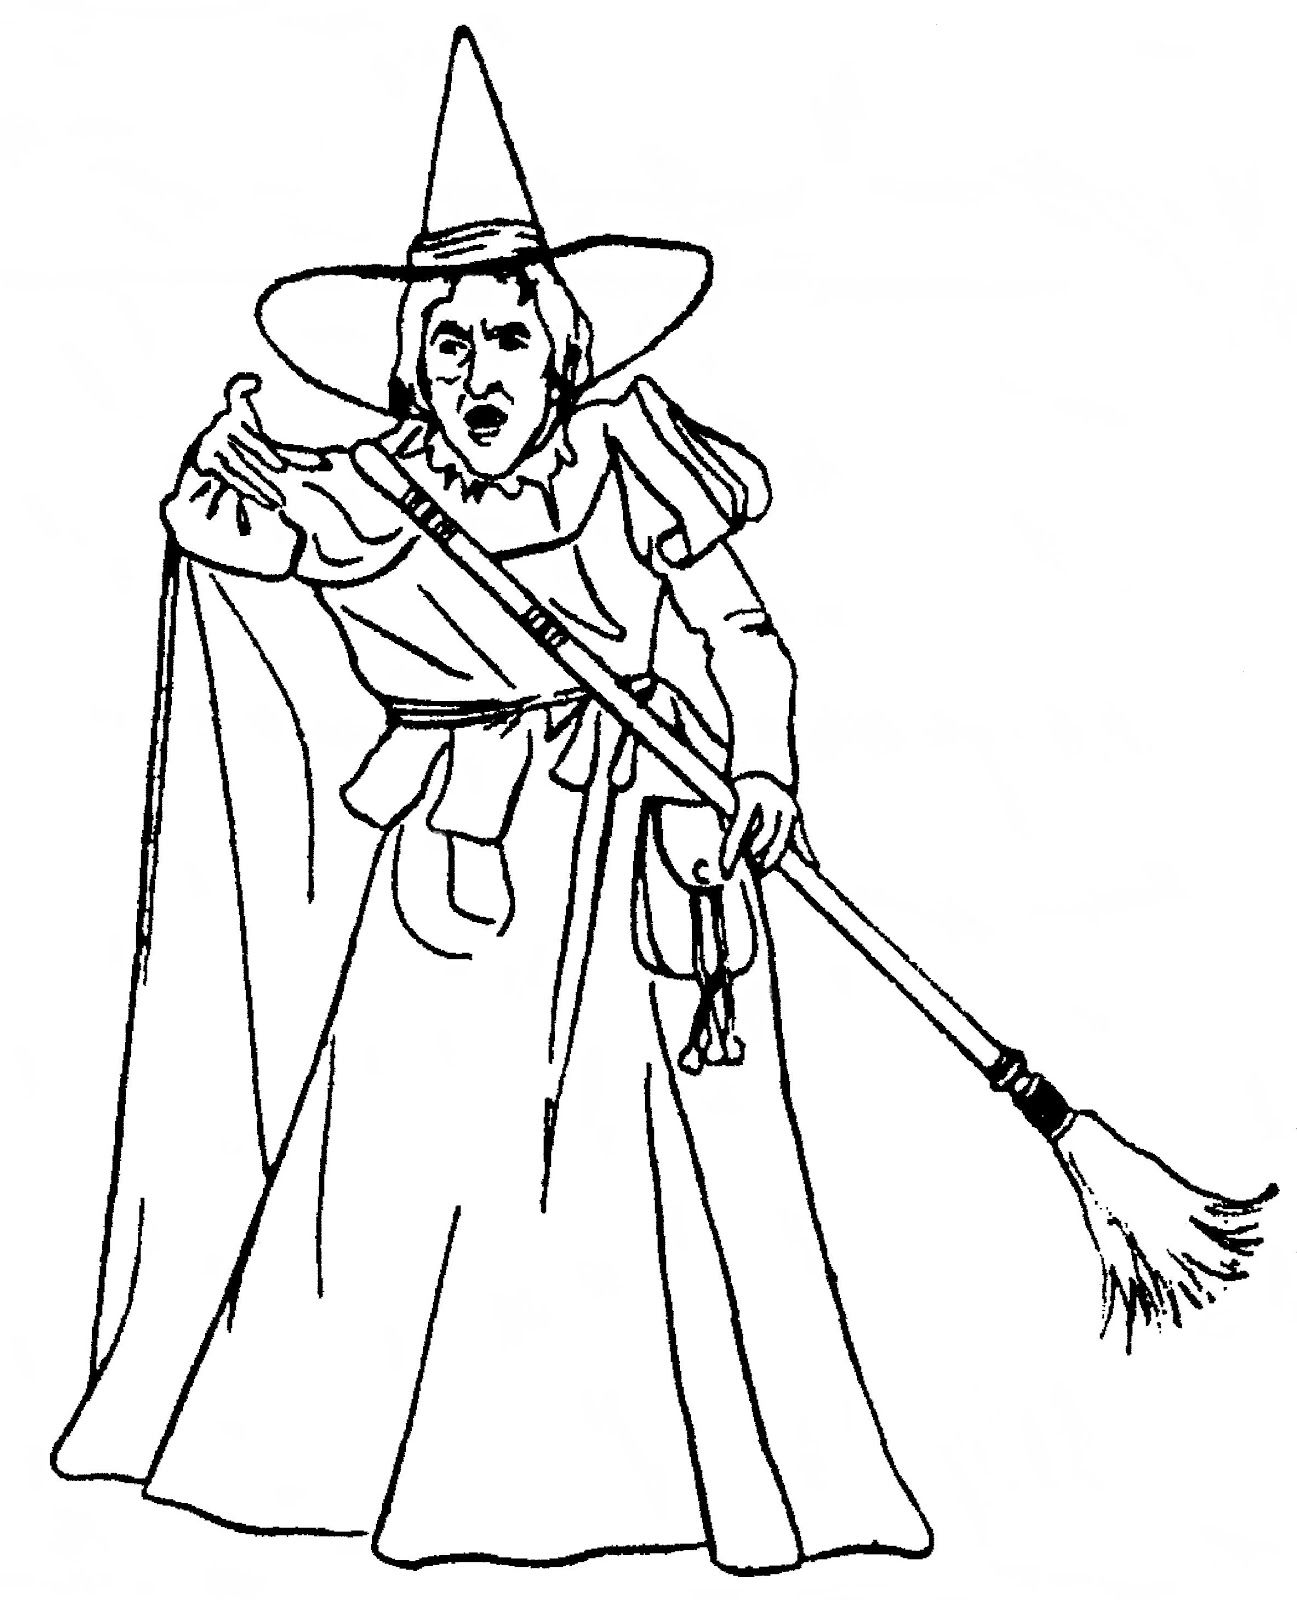 Printable Witch Coloring Pages Witch Coloring Pages Wizard Of Oz Color Coloring Books